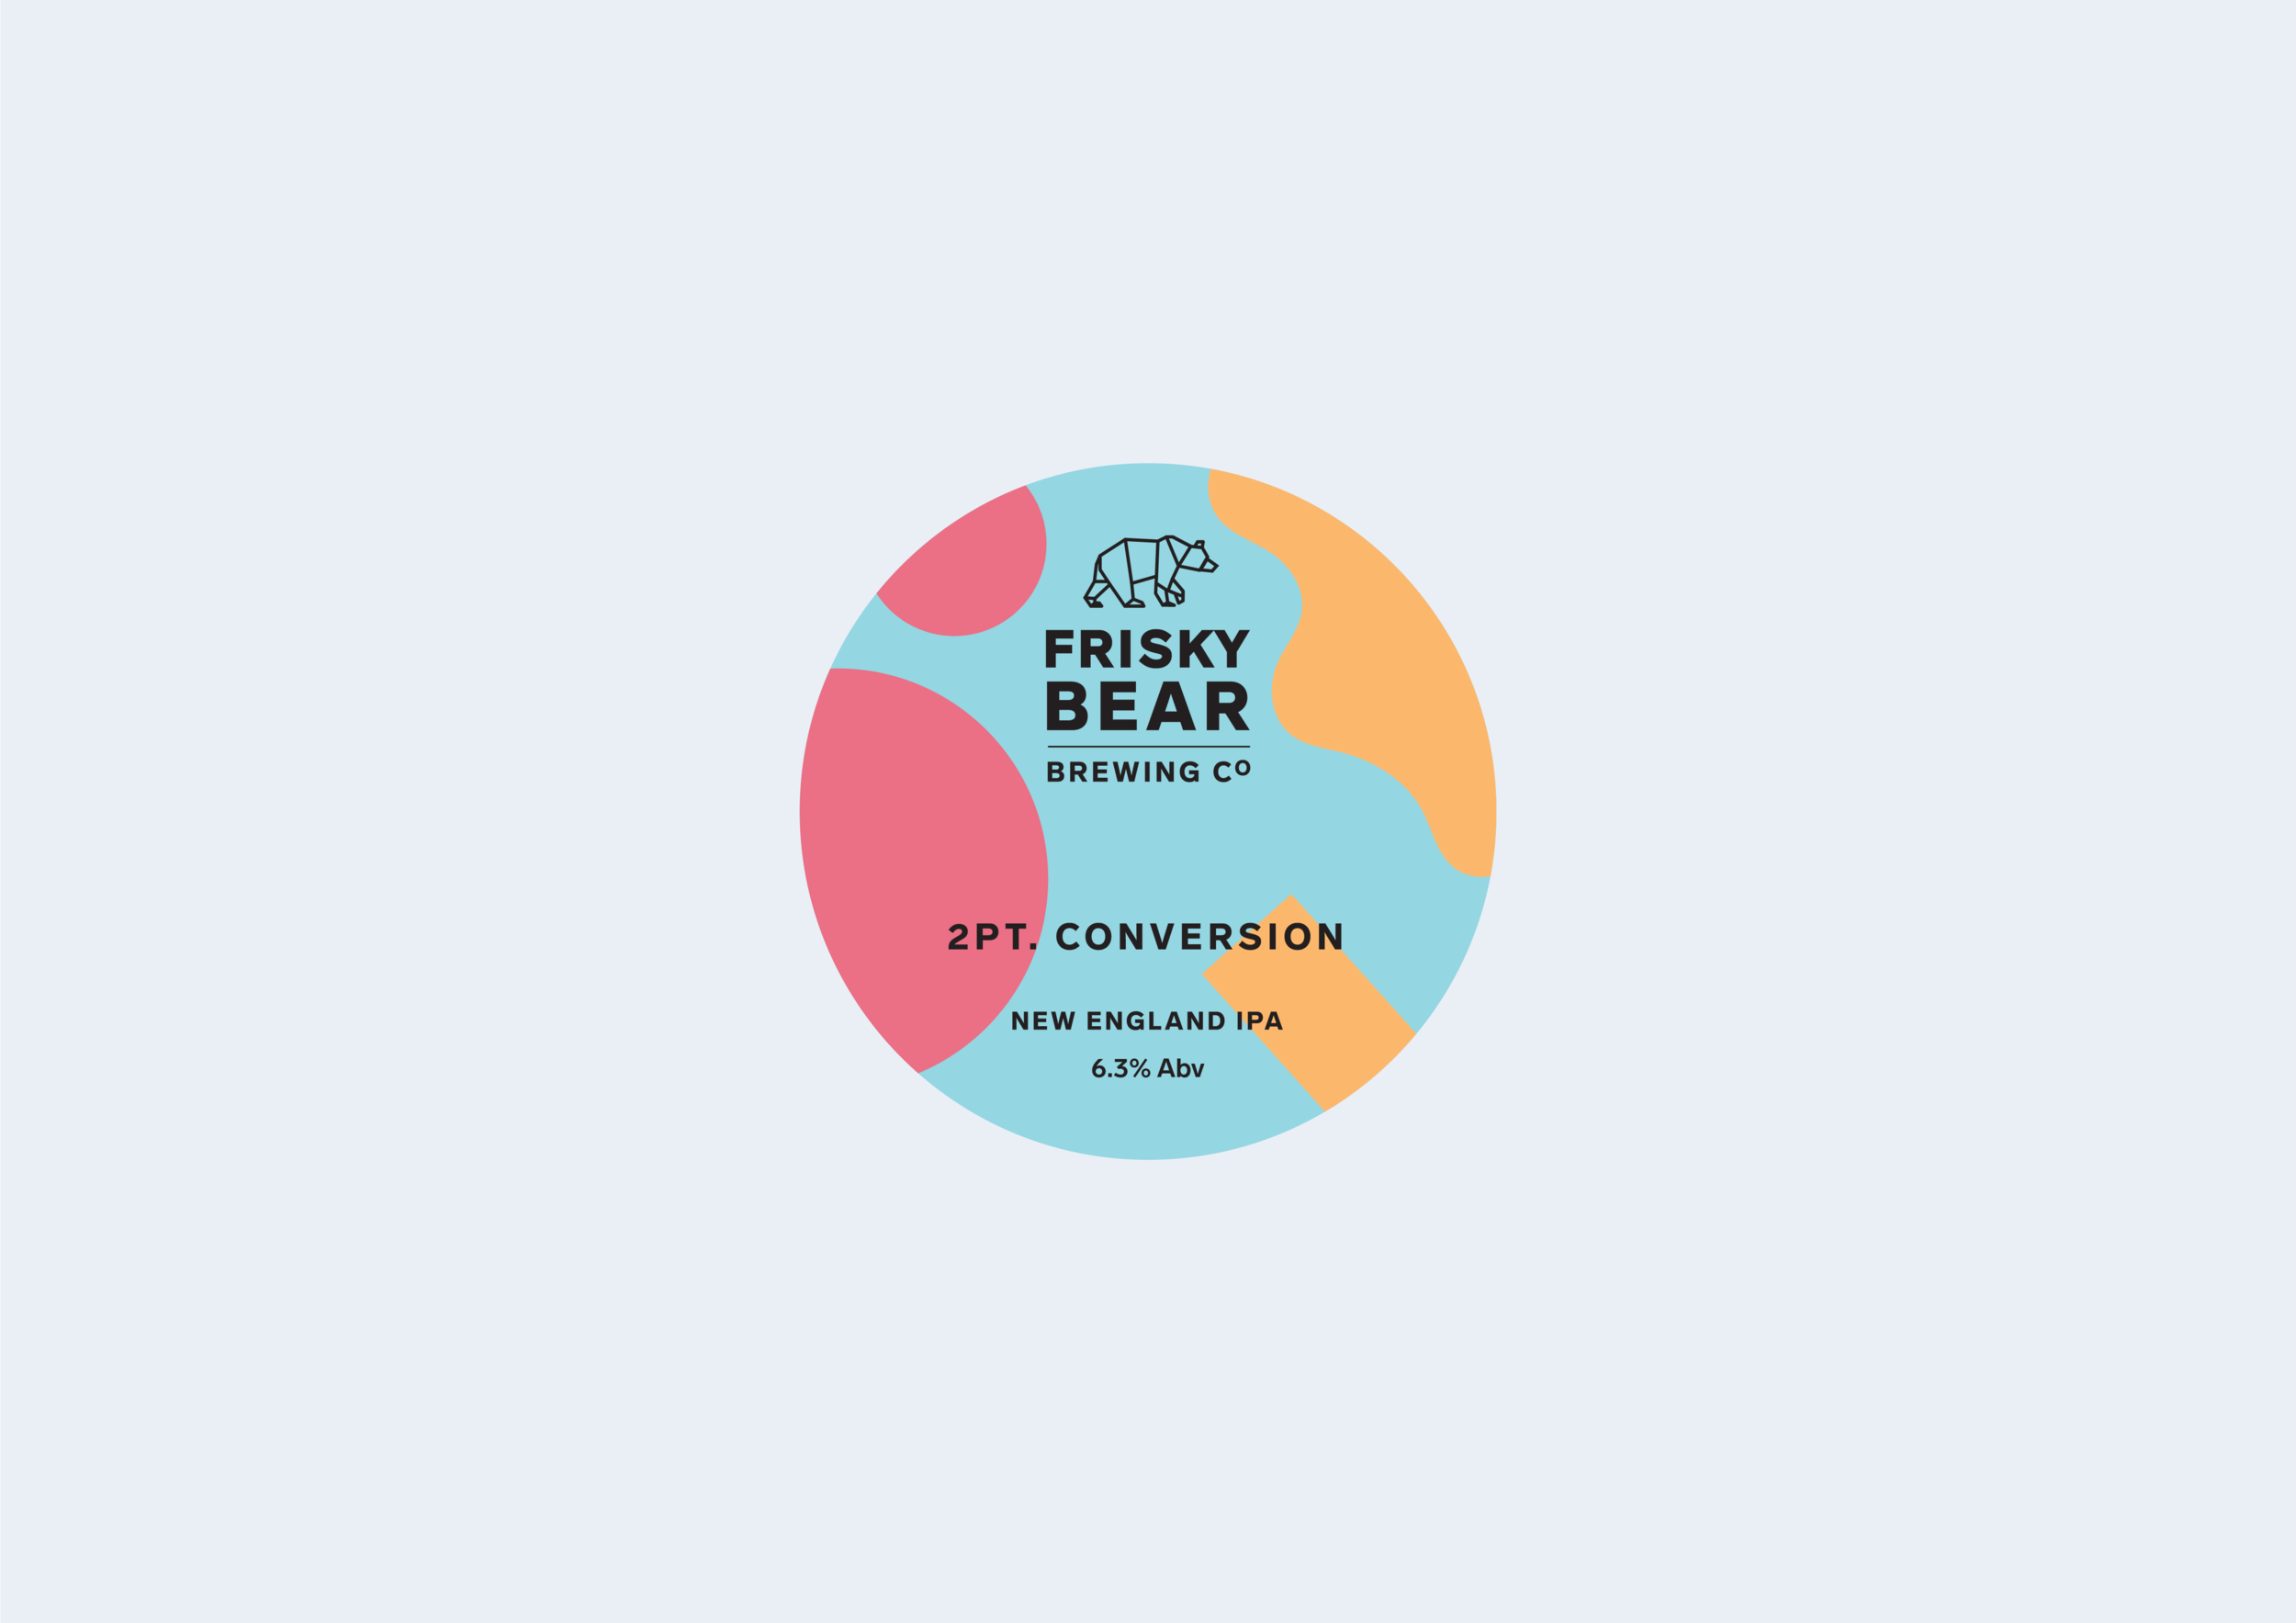 Frisky Bear craft beer branding 5.png